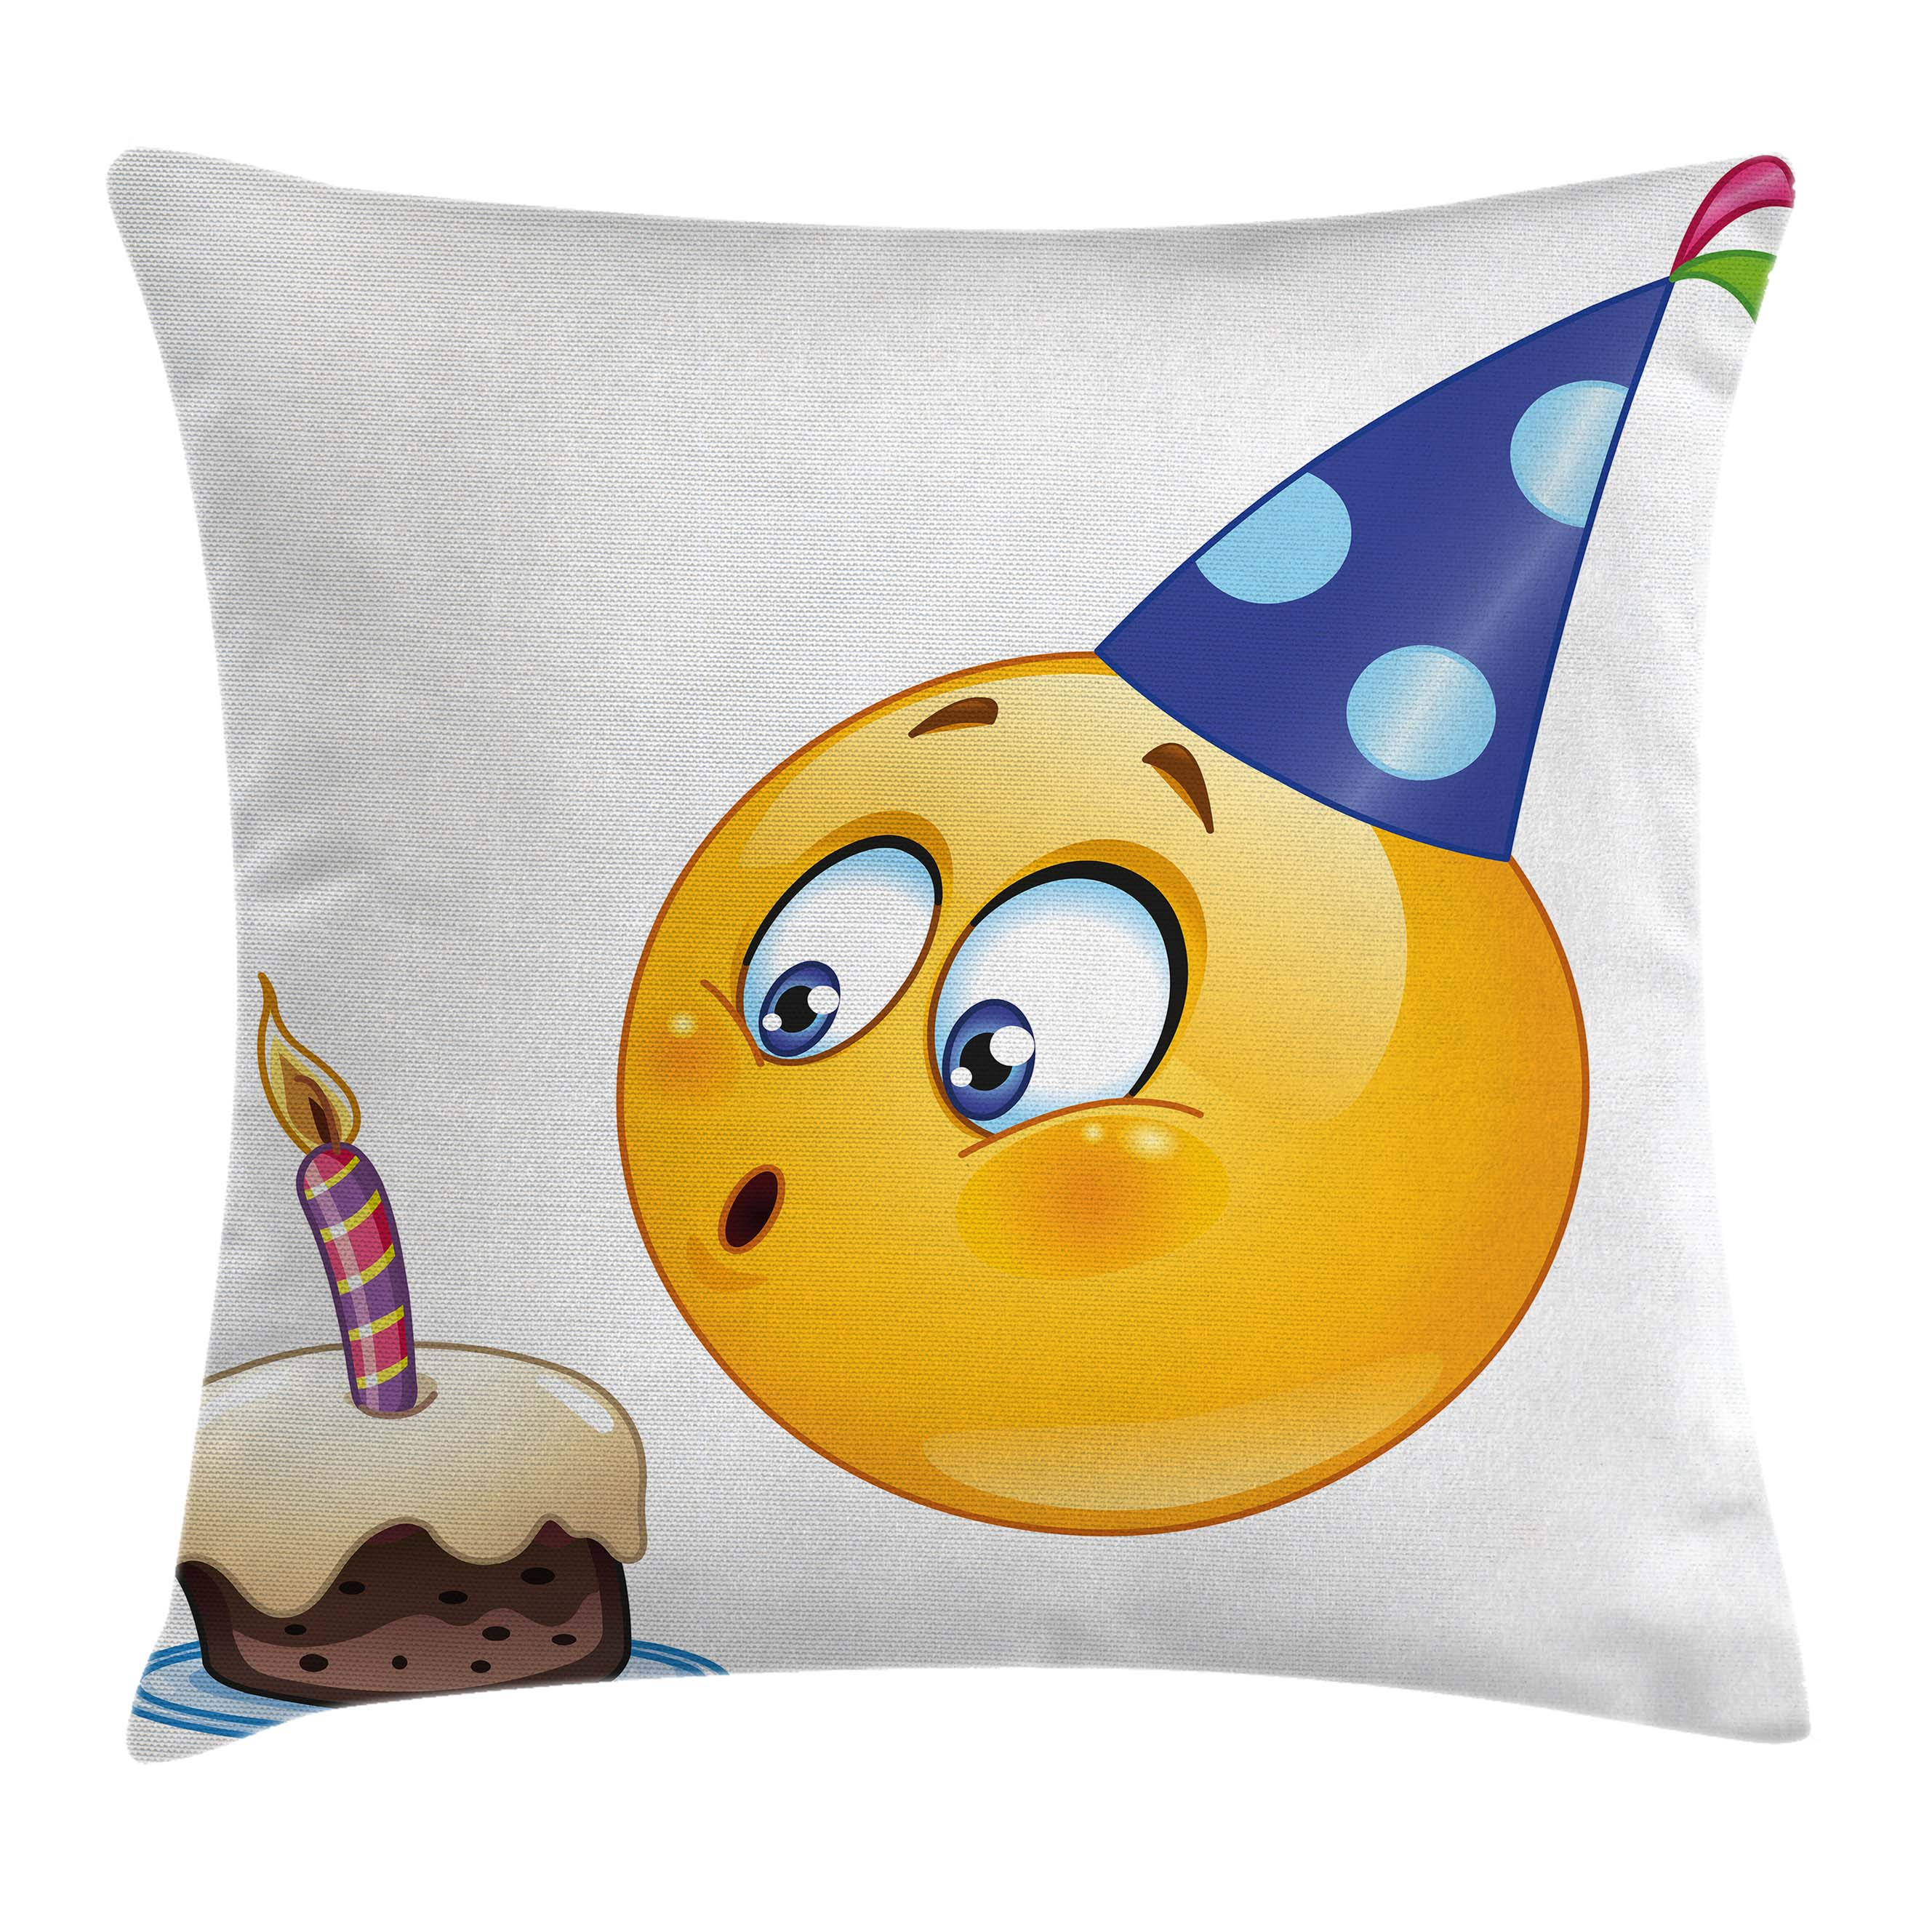 Birthday Decorations for Kids Throw Pillow Cushion Cover, Happy Emoji Face with Cone Hat Blowing Party Cake, Decorative Square Accent Pillow Case, 16 X 16 Inches, Yellow and Dark Blue, by Ambesonne